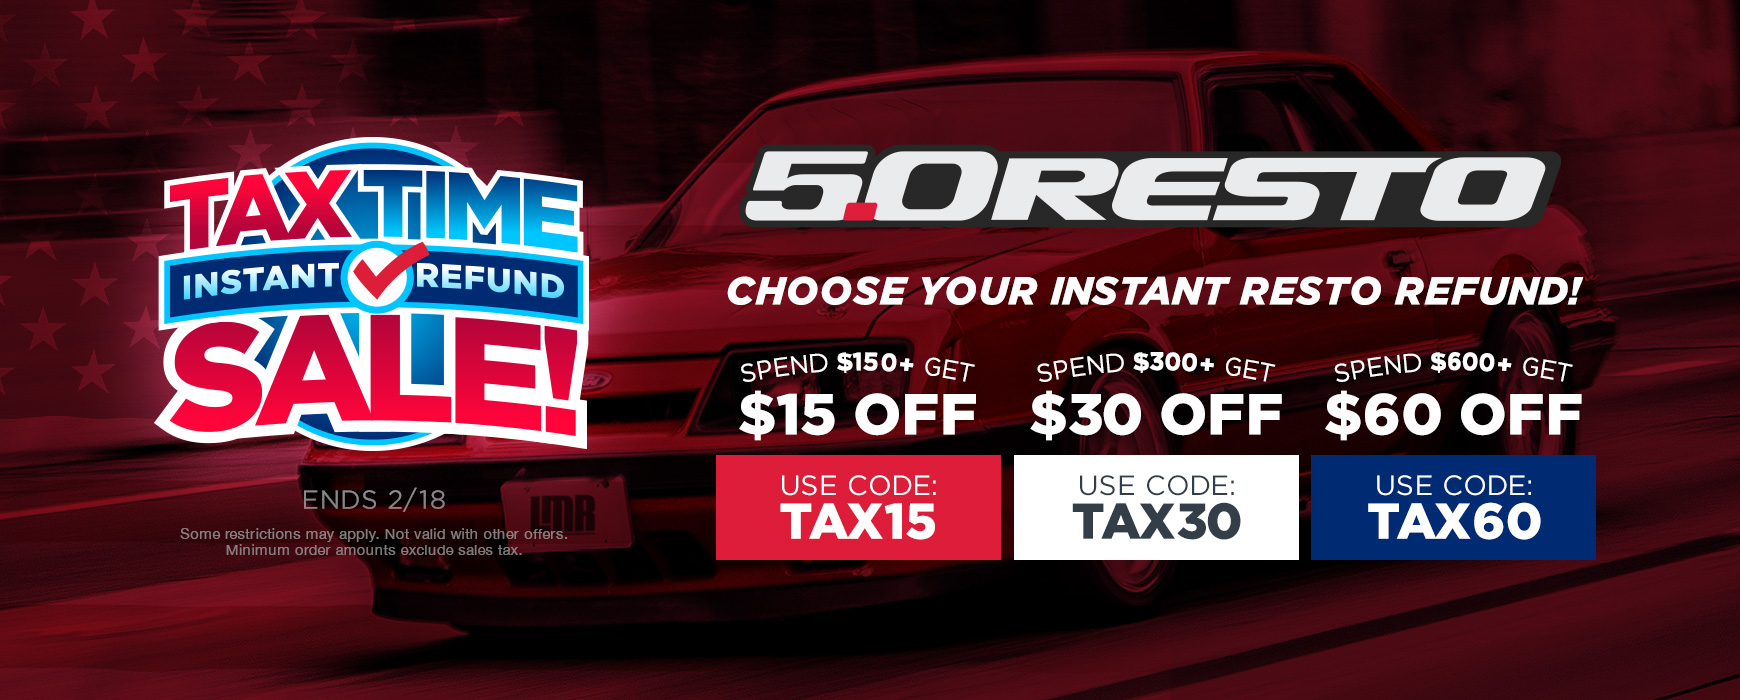 Tax Time Instant Refund Deals on 5.0 Resto